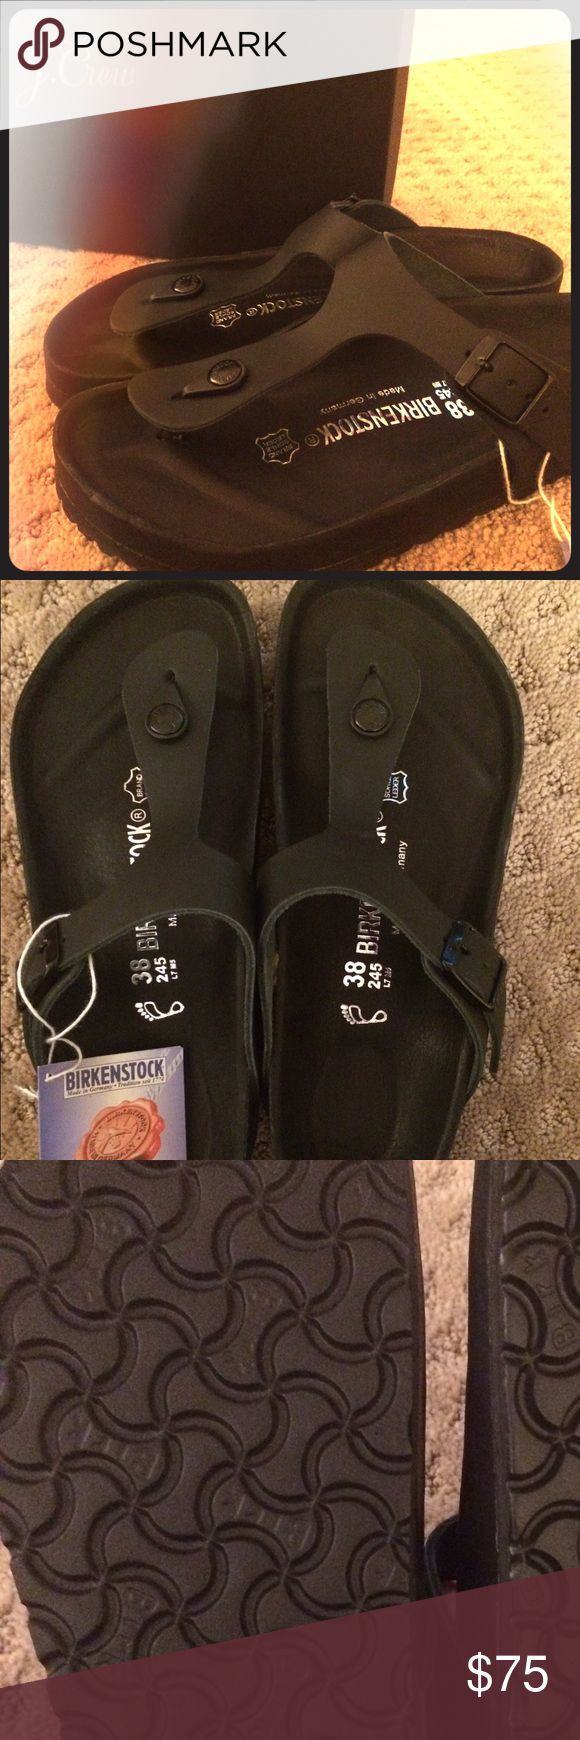 Birkenstock Gizeh-- Size 38 {Matte Black} Super chic pair of women's Birkenstock Gizeh sandal. Size 38, matte black finish. New in box with Birksentock information tag attached. These were purchased at J.Crew. Birkenstock Shoes Sandals